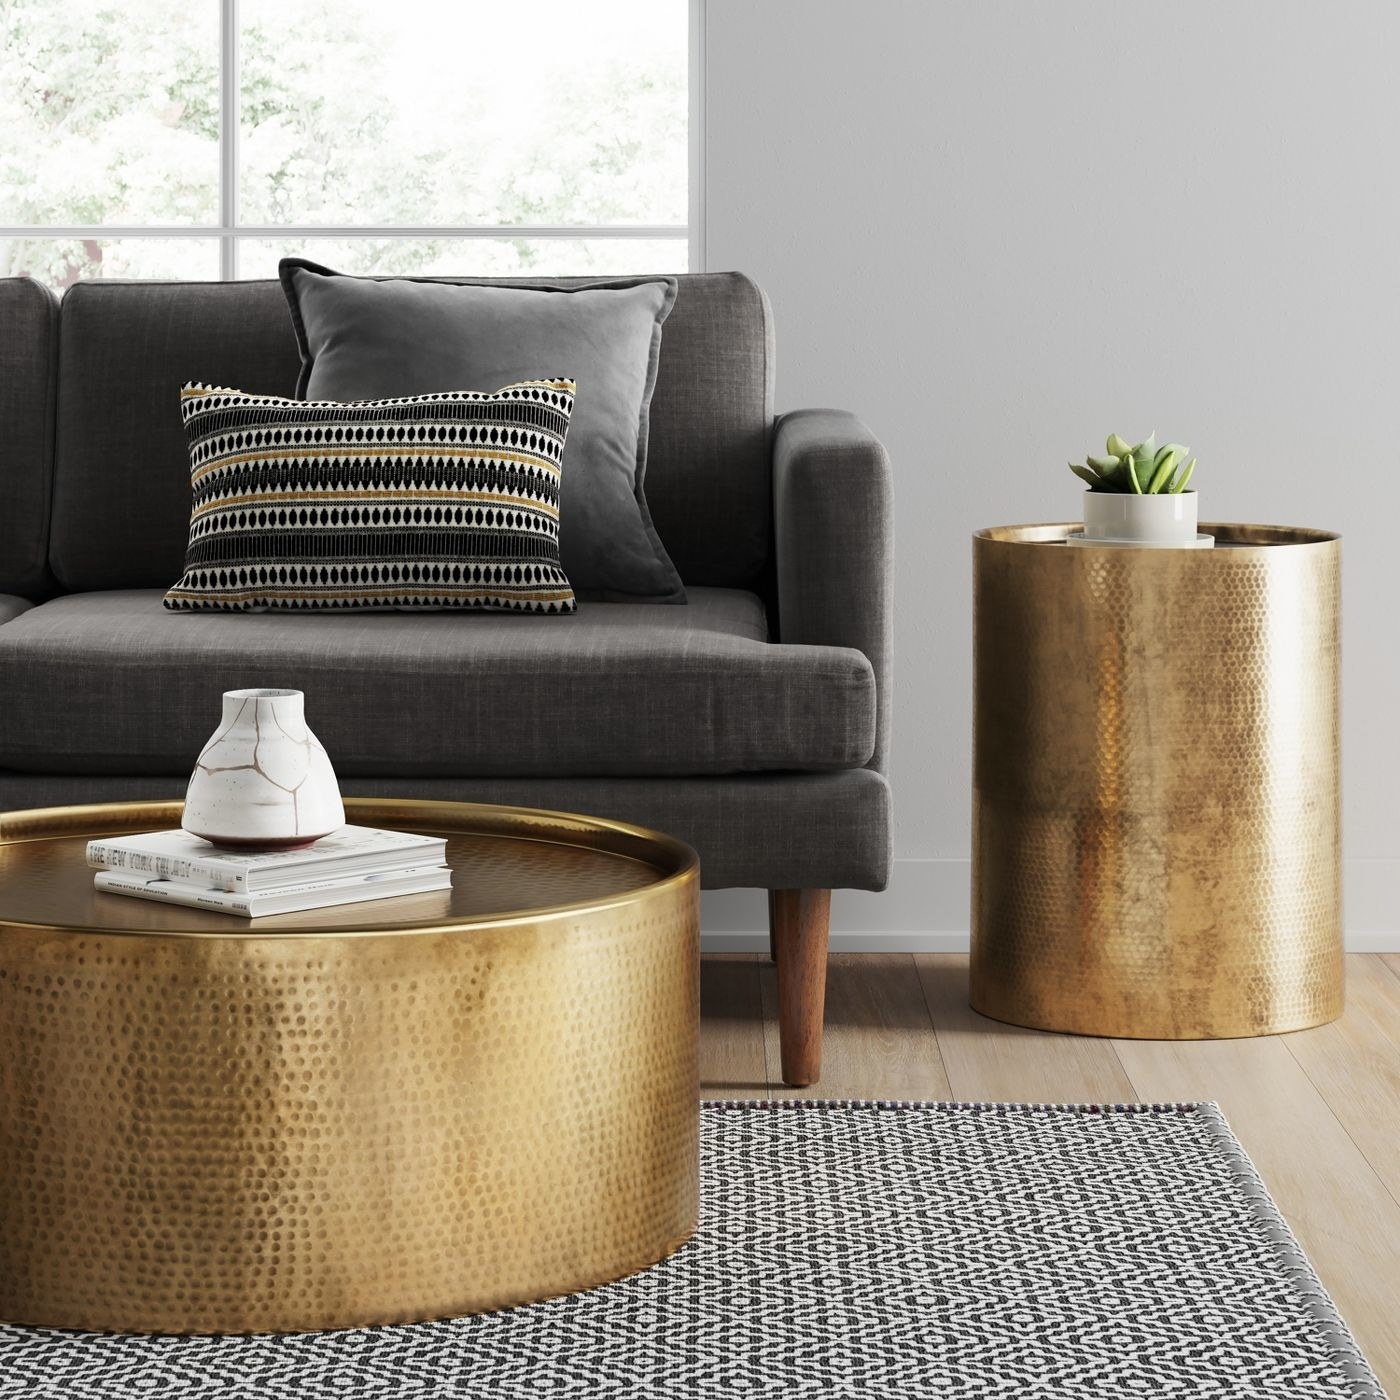 cylindrical gold accent table next to a couch